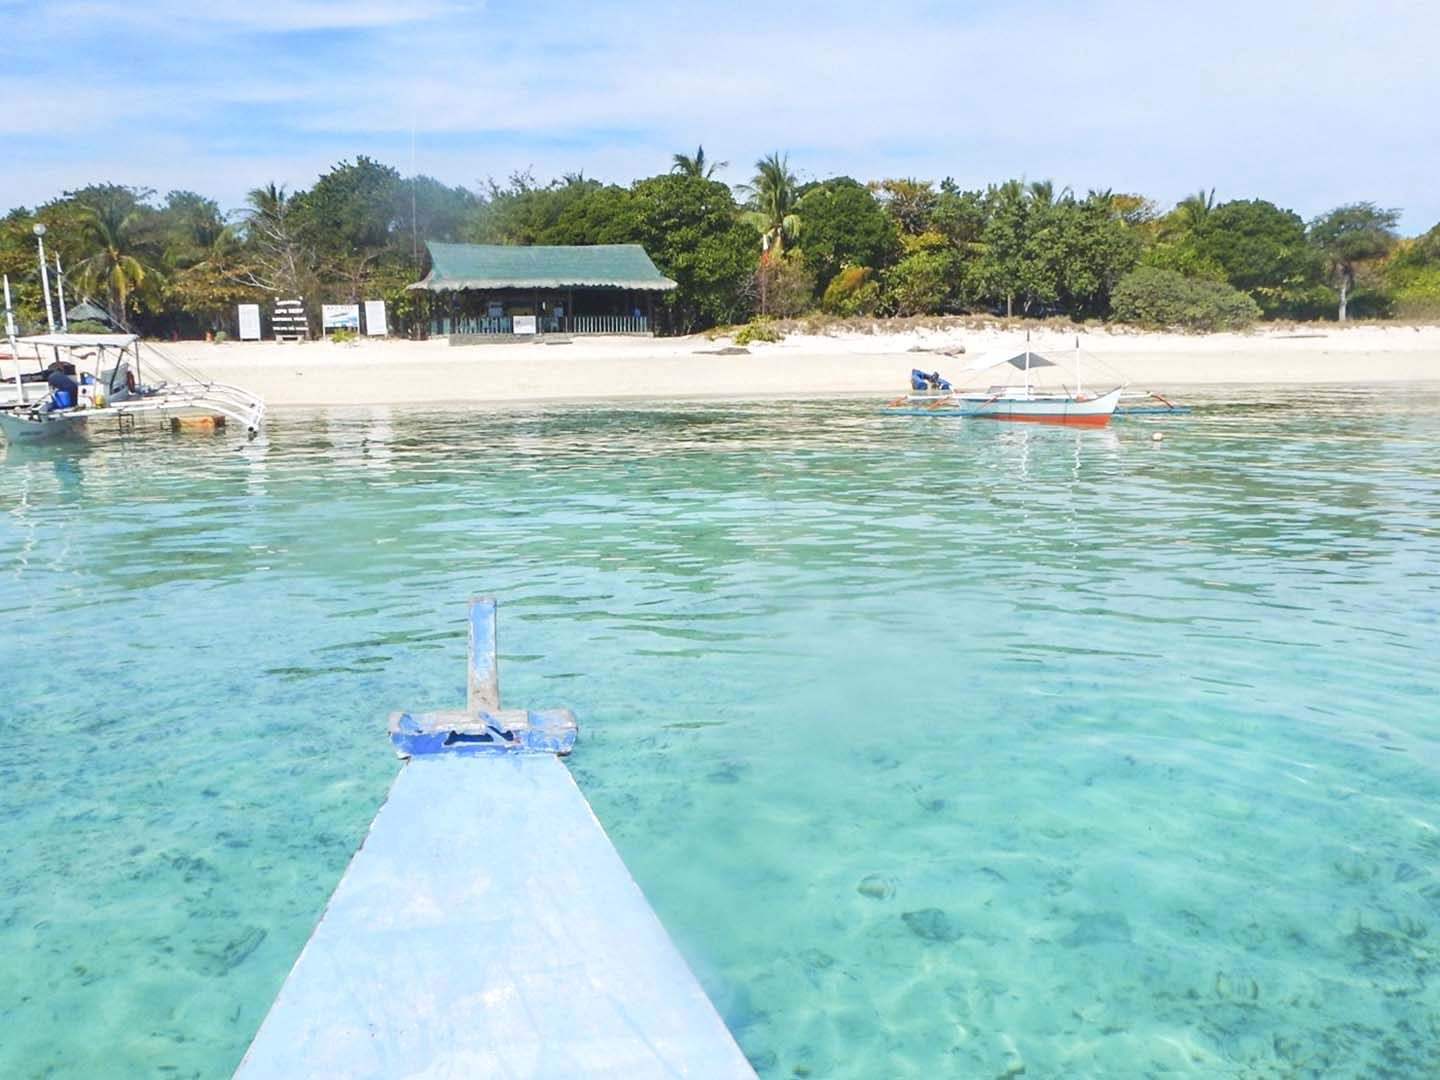 Our dive boat boat approaches Apo Reef Island